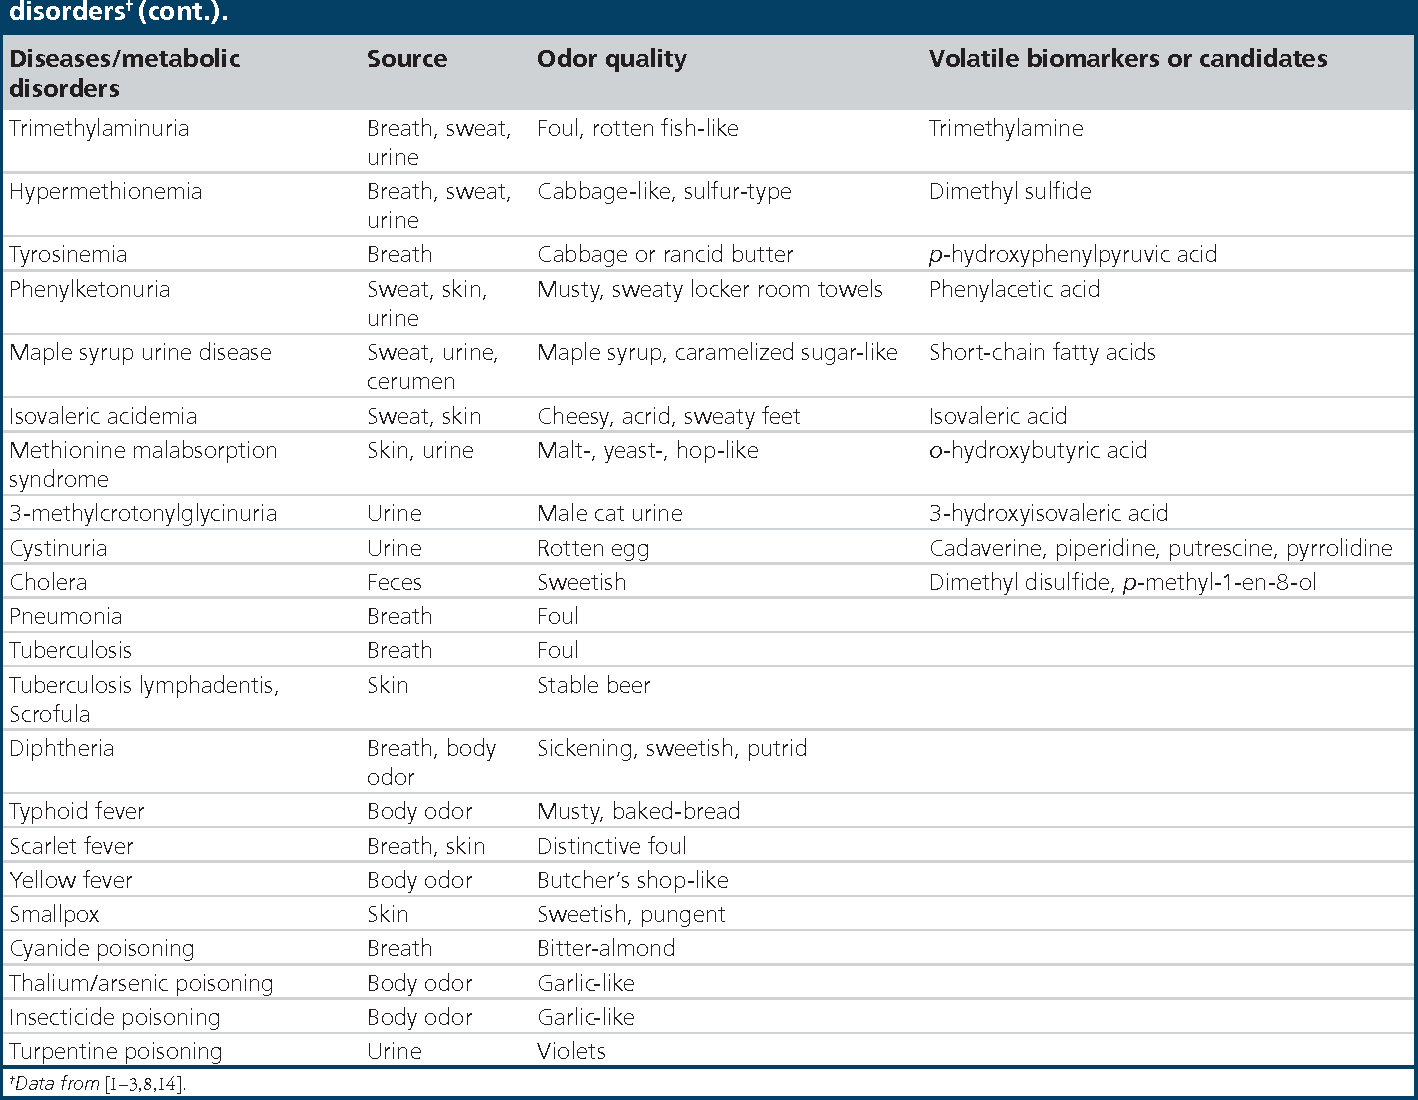 Table 1 from Noninvasive analysis of volatile biomarkers in human